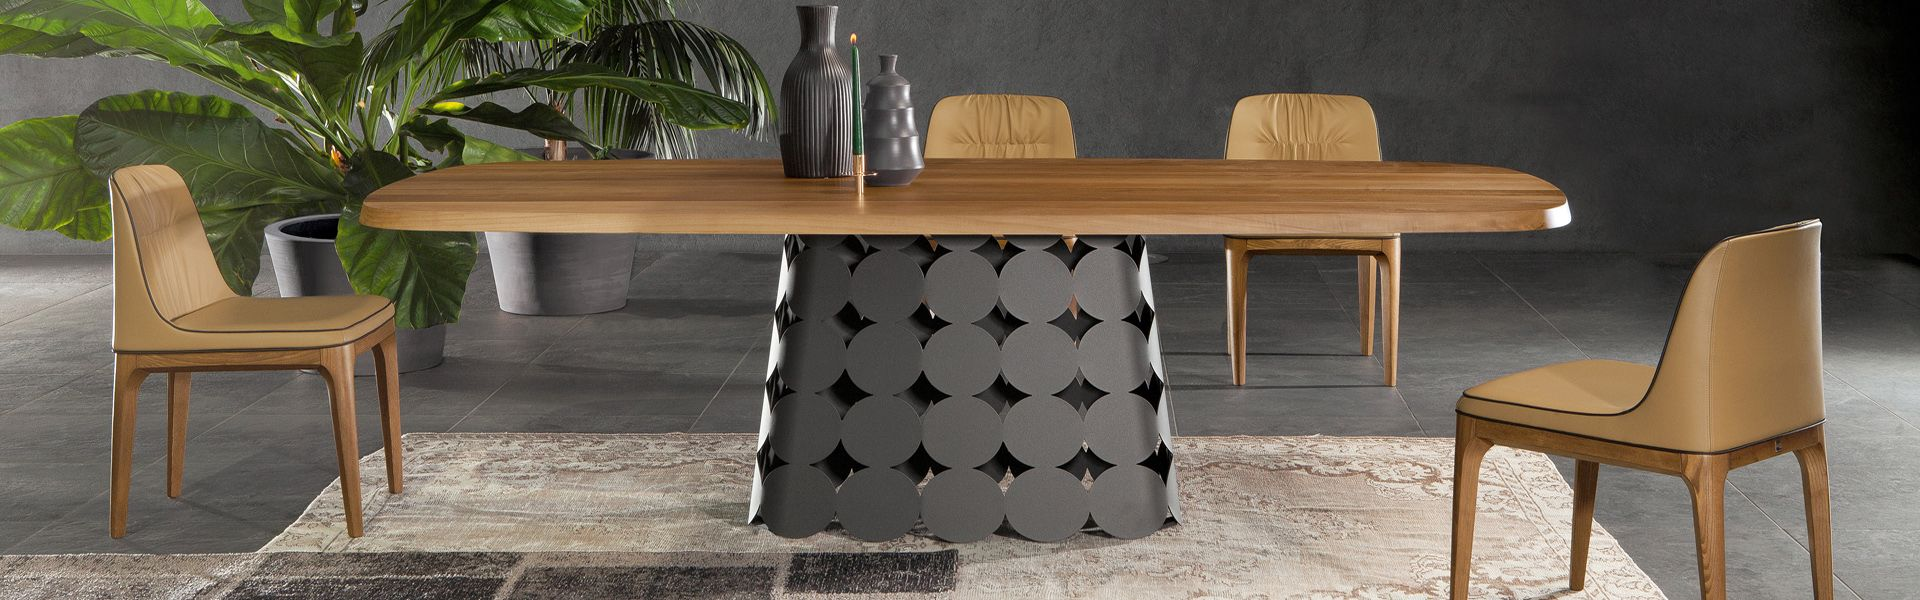 mobilier terrasse design gw19 jornalagora. Black Bedroom Furniture Sets. Home Design Ideas